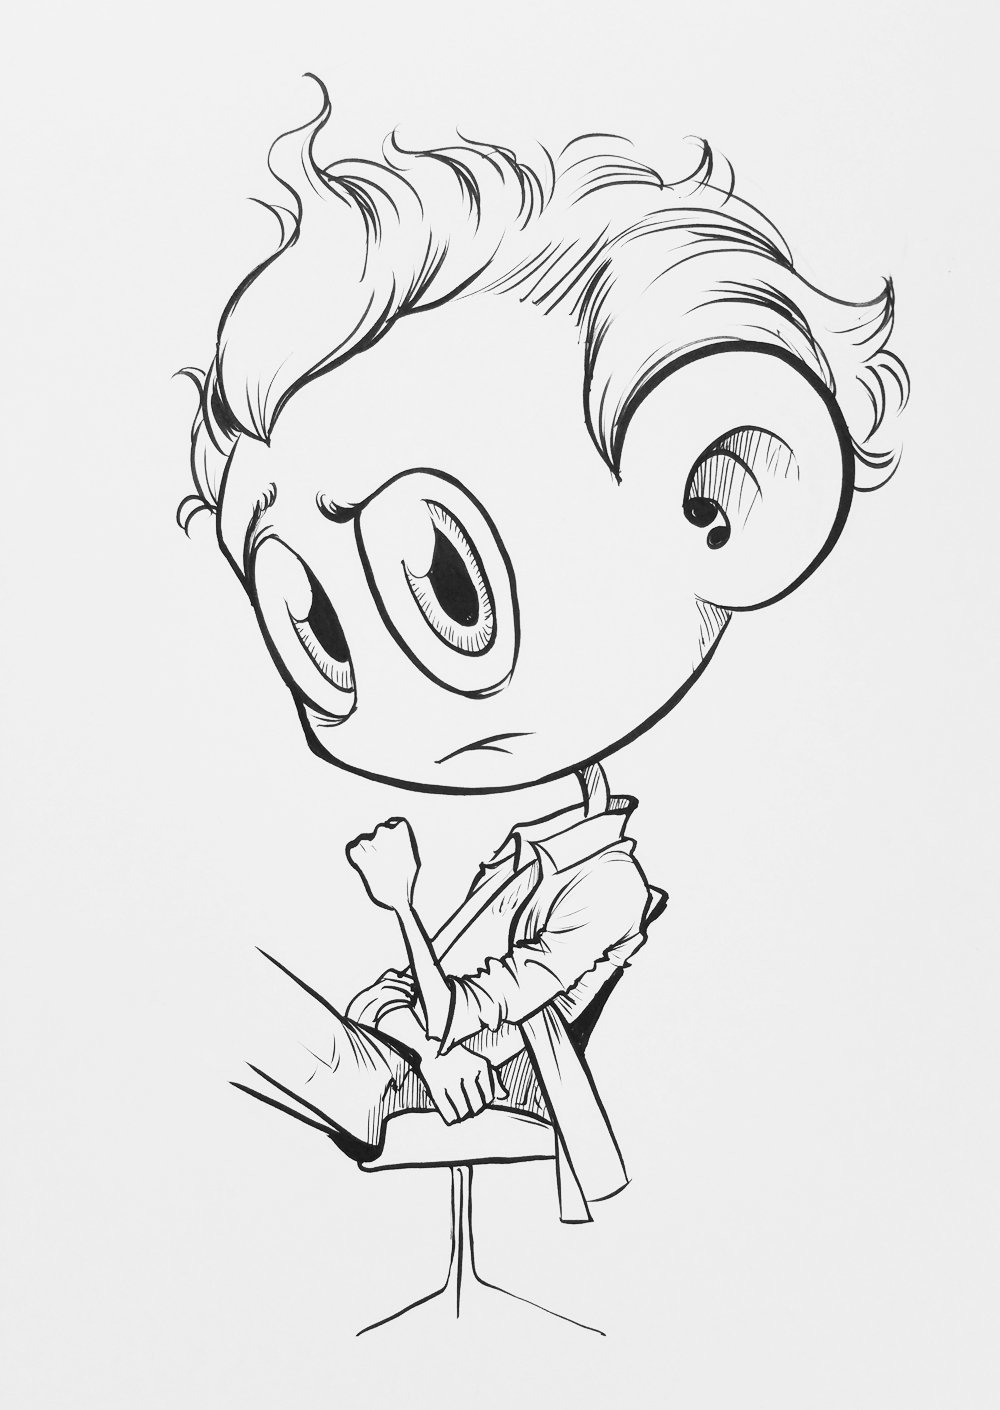 1000x1410 Tom Hiddleston For W Magazine By Hashtag Genius. More Drawings